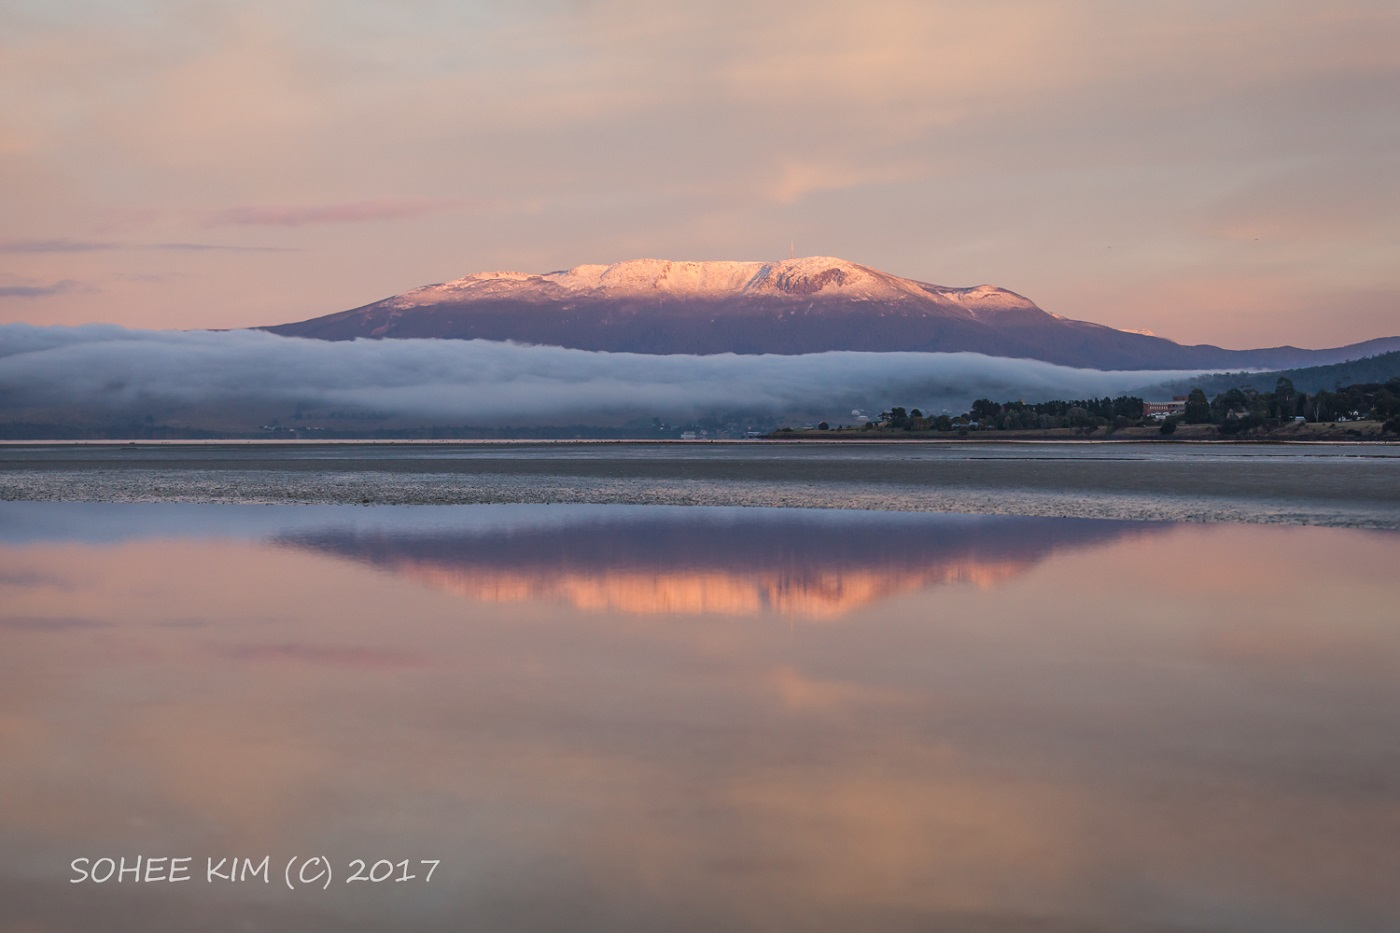 Softly-lit Derwent river in the foreground with a thick blanket of fog and Mt Wellington rising above it.